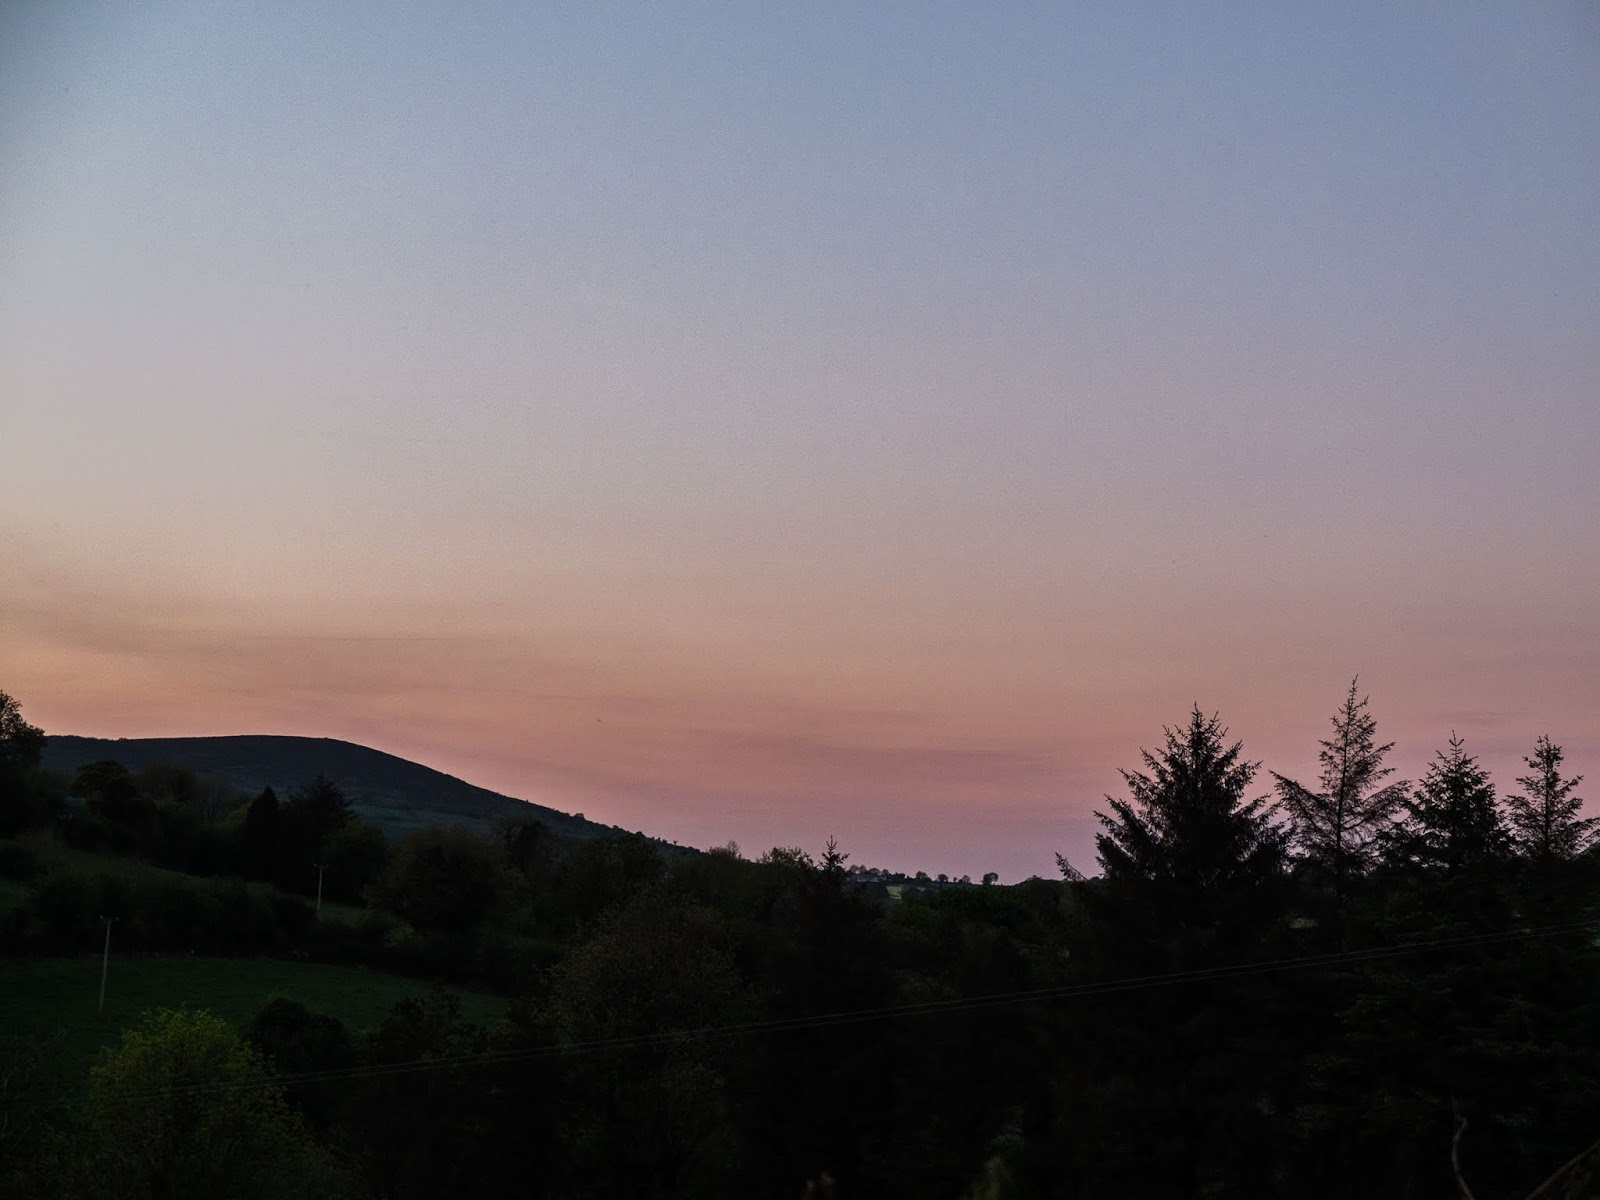 Gentle and pastel cloudless sunset over a mountain in North Co.Cork, Ireland.